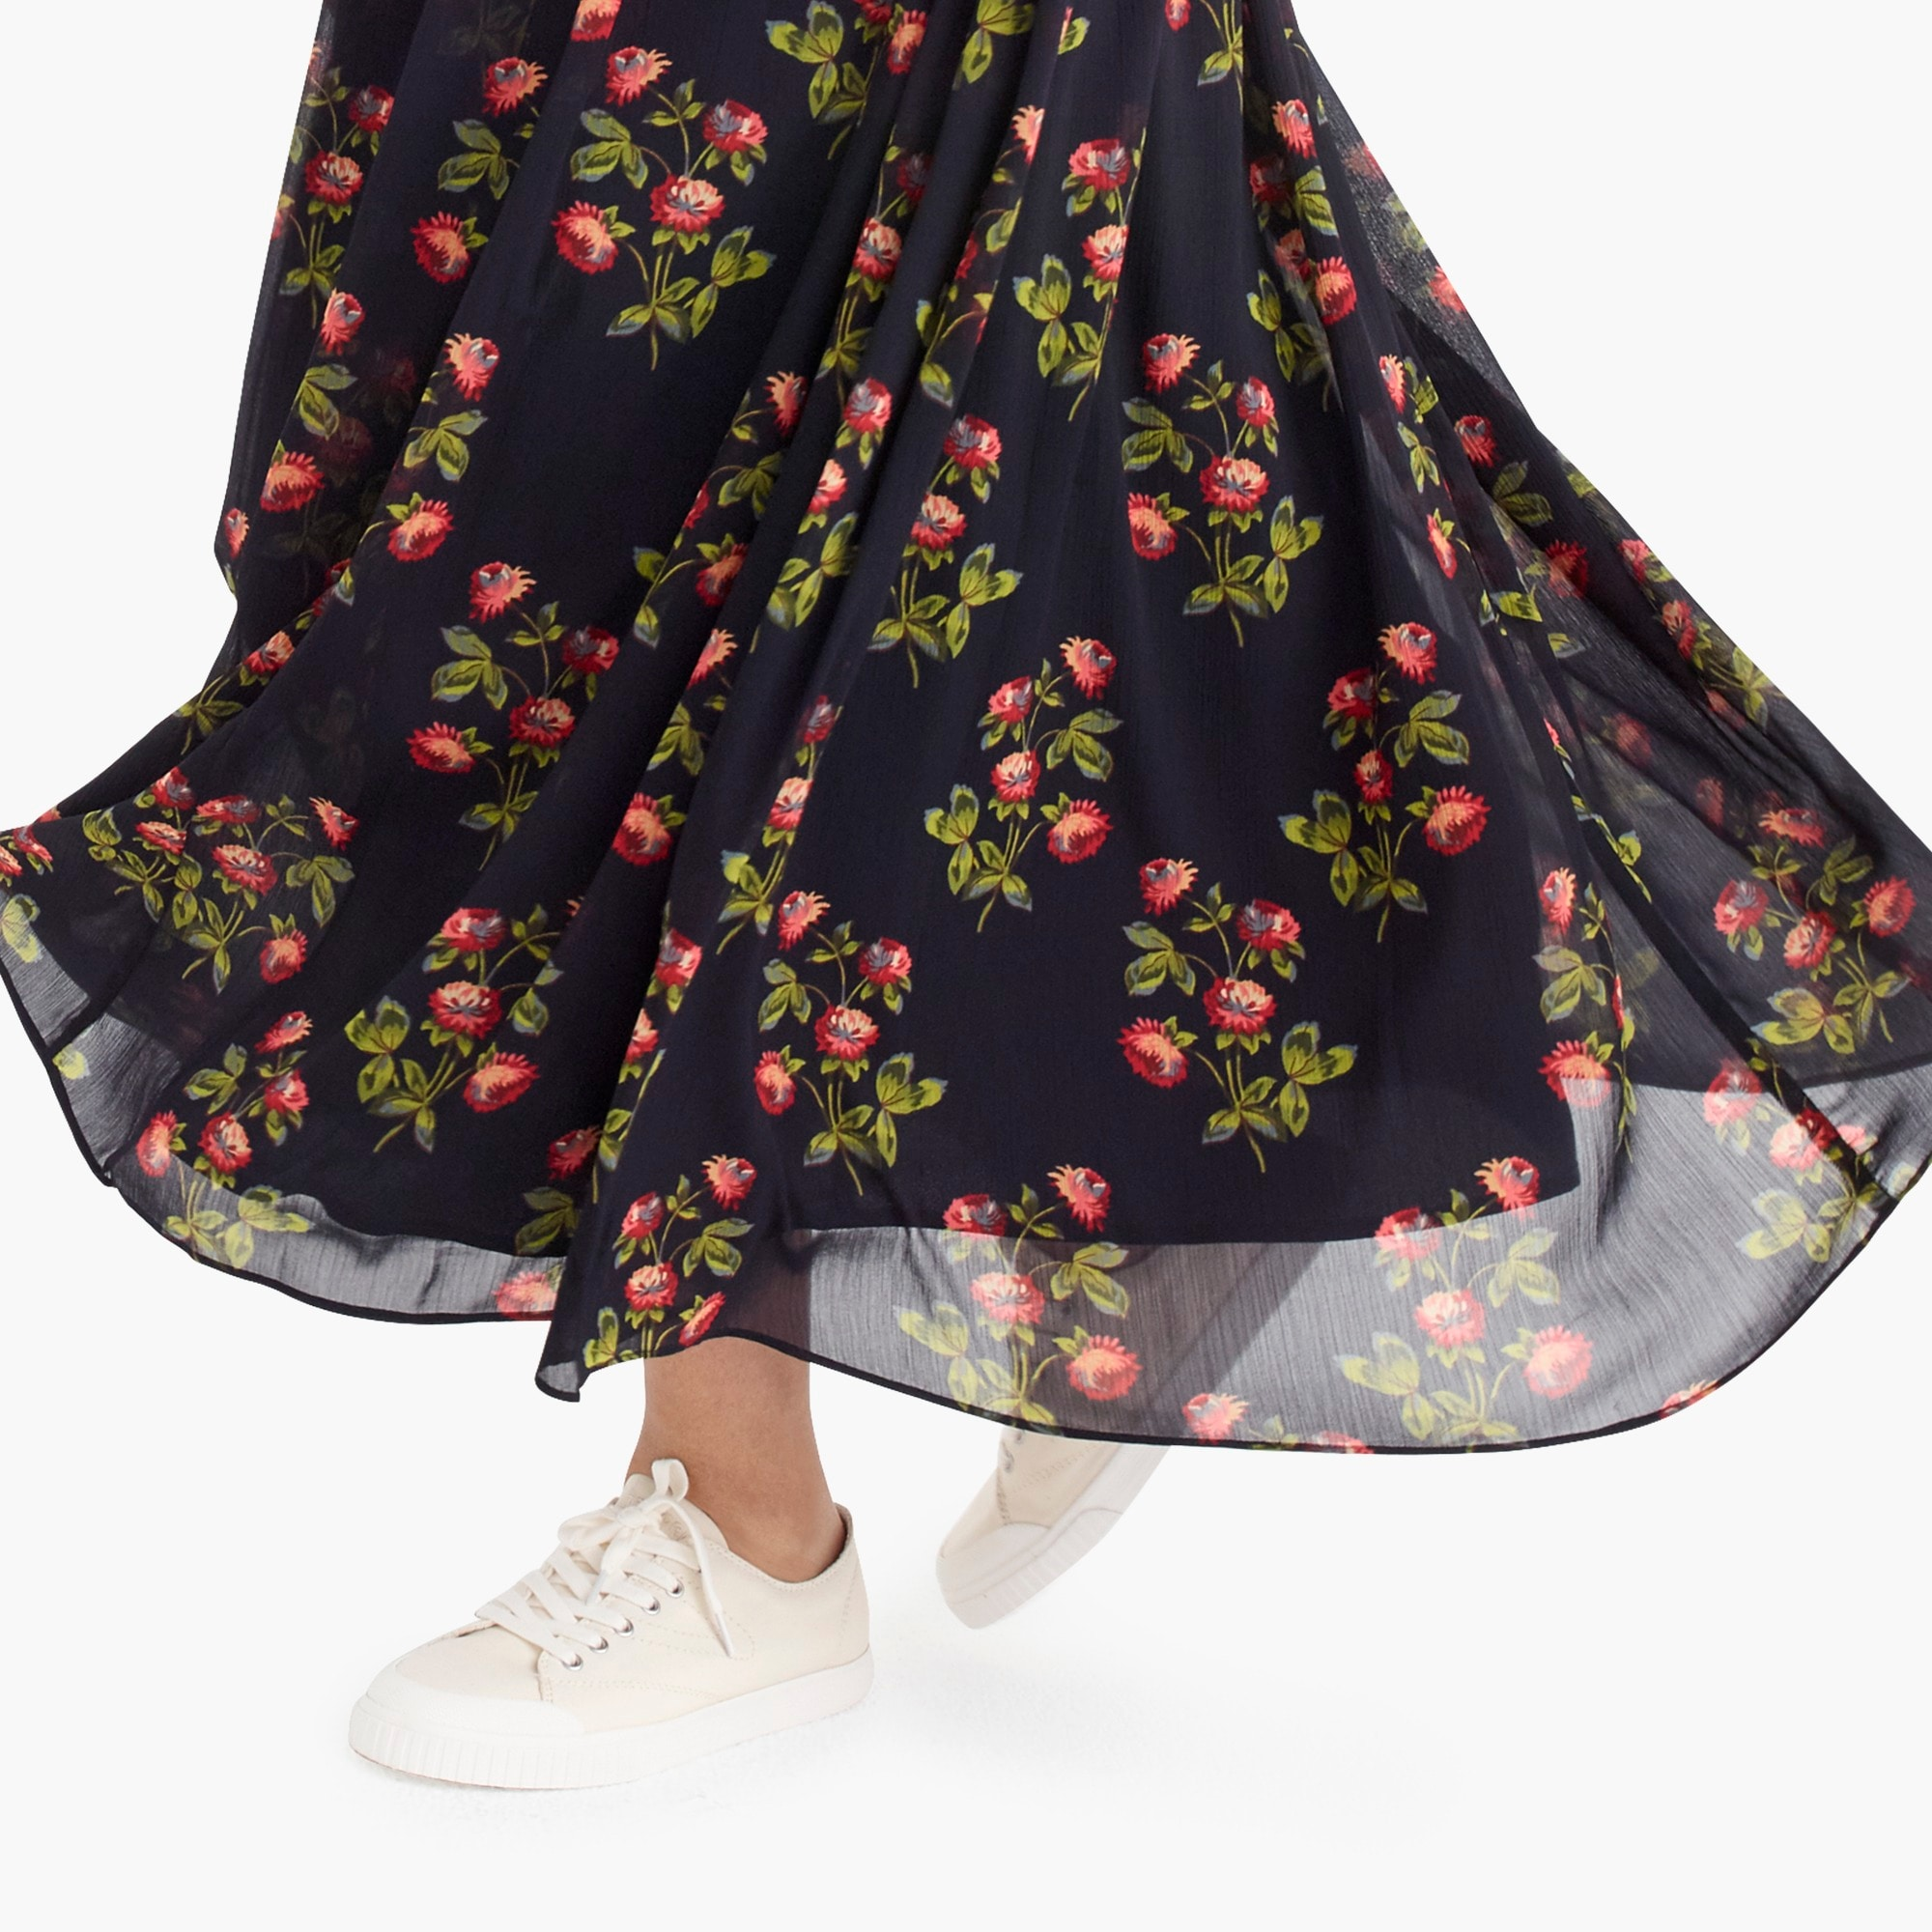 Petite Point Sur floral maxi skirt in crinkle chiffon